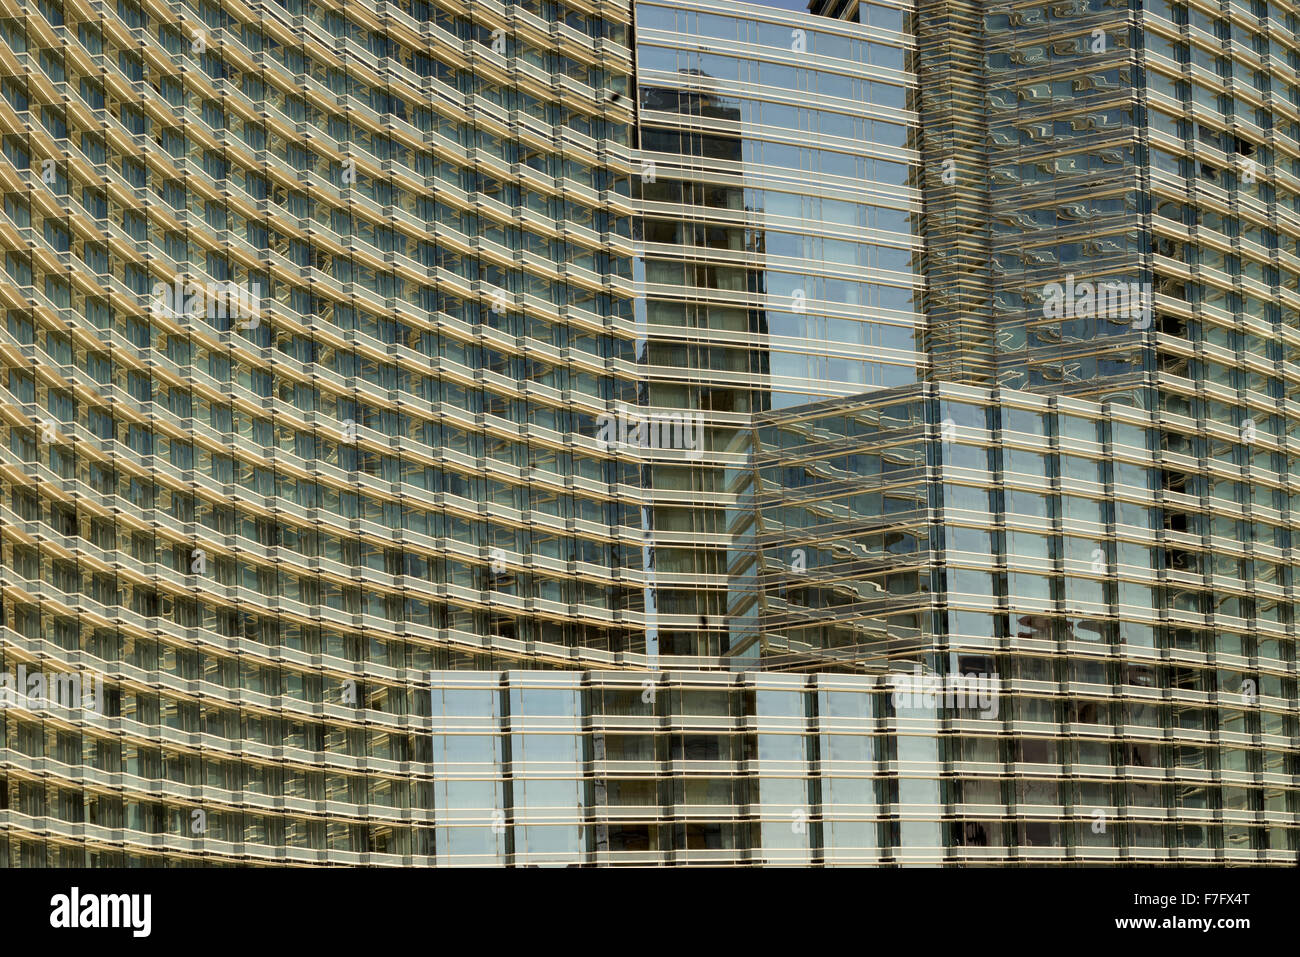 Hotel windows in Las Vegas, Nevada - Stock Image